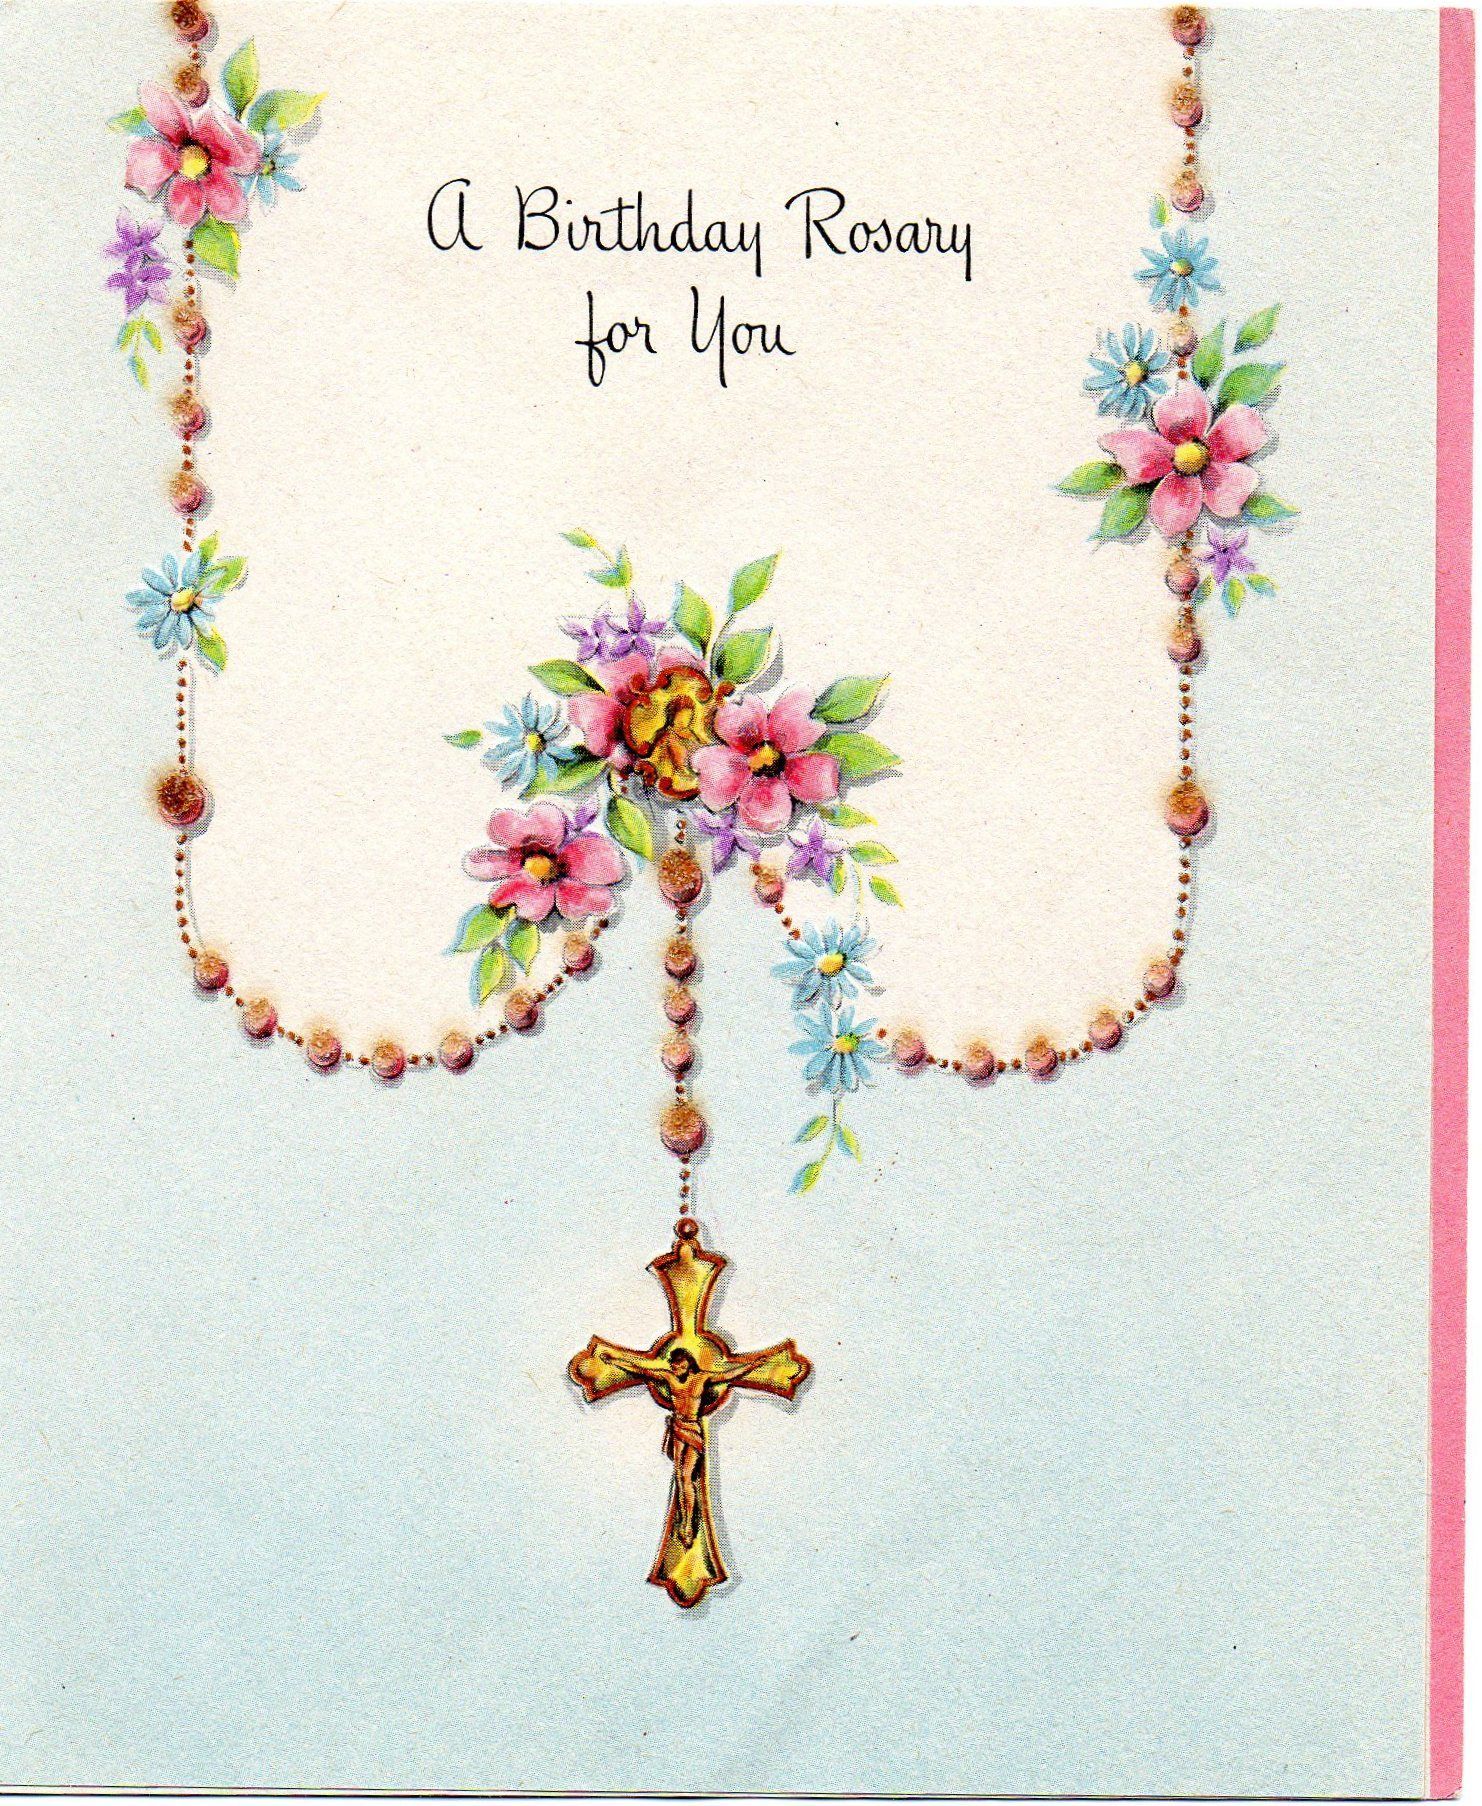 medium resolution of a birthday rosary for you may god watch over you each day and bless you lovingly this is the prayer i m saying on your birthday rosary